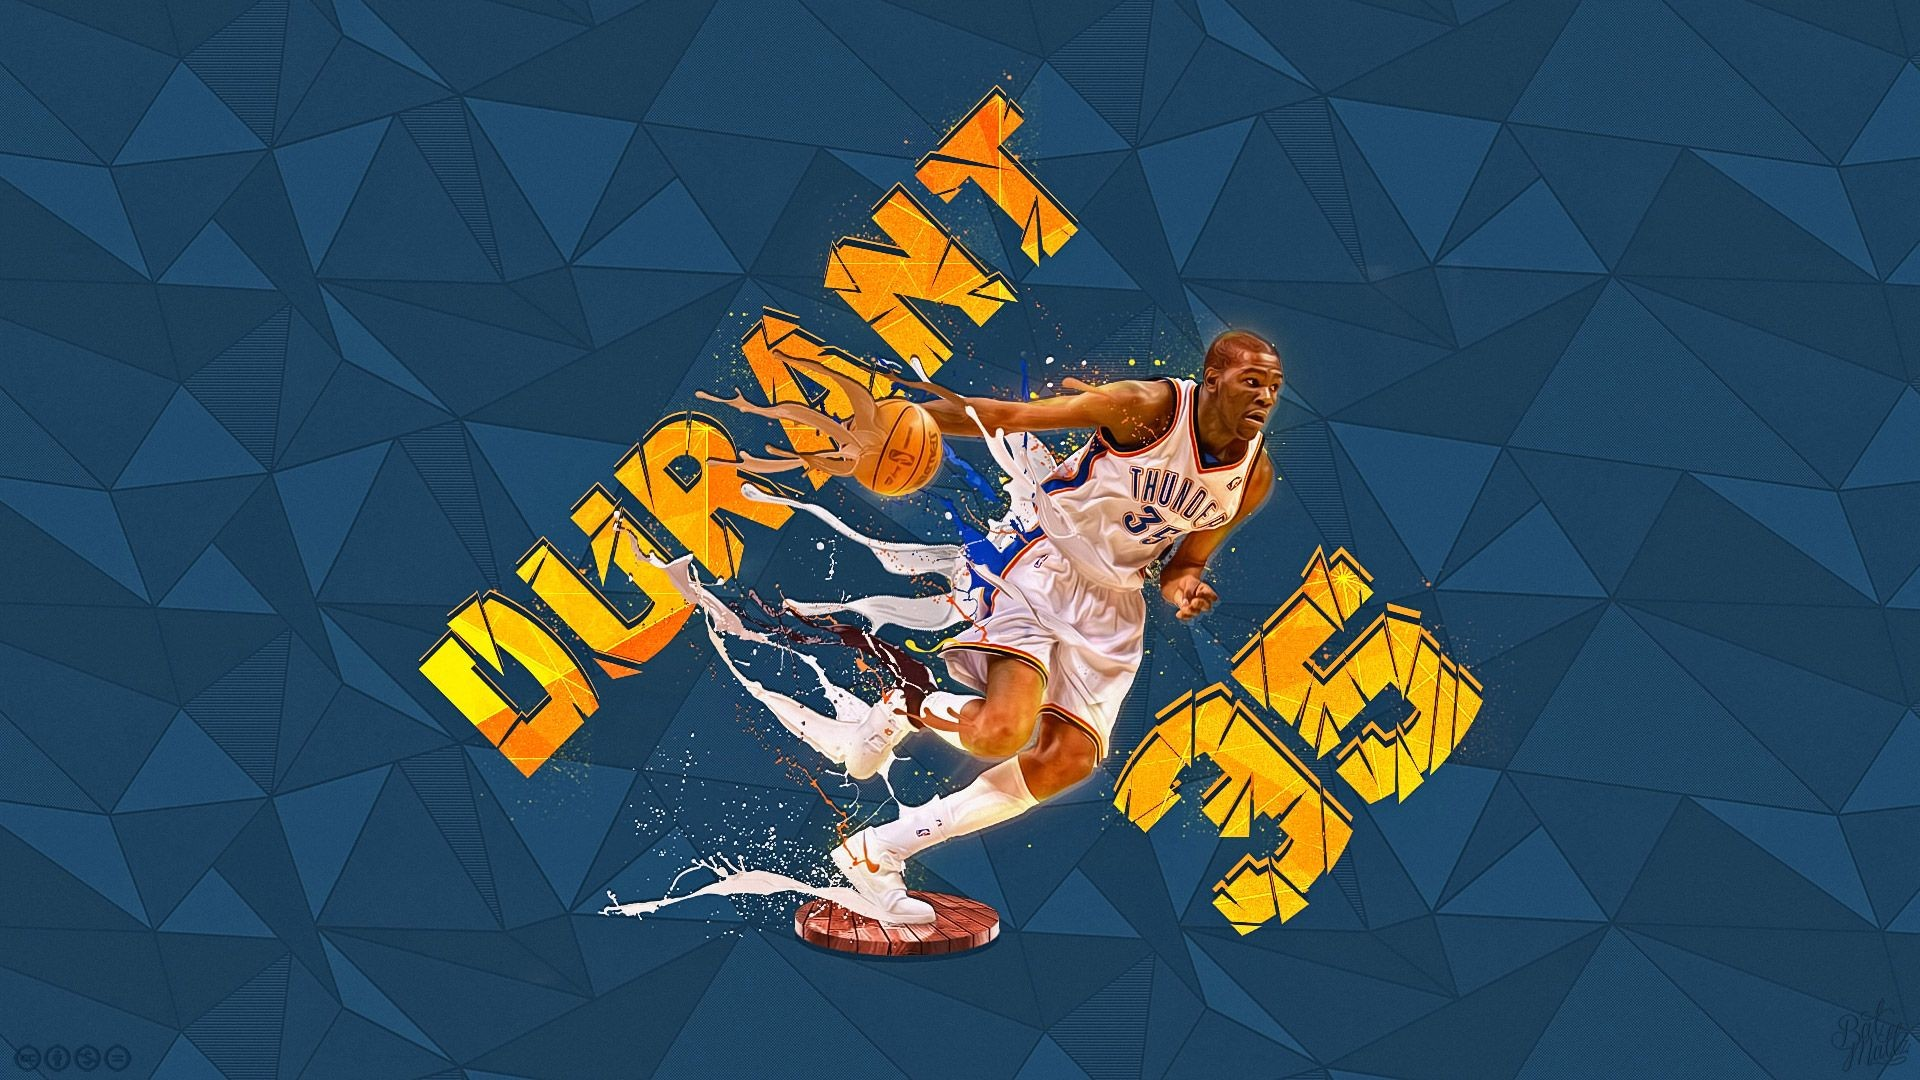 Res: 1920x1080, Kevin Durant Wallpapers | Basketball Wallpapers at .